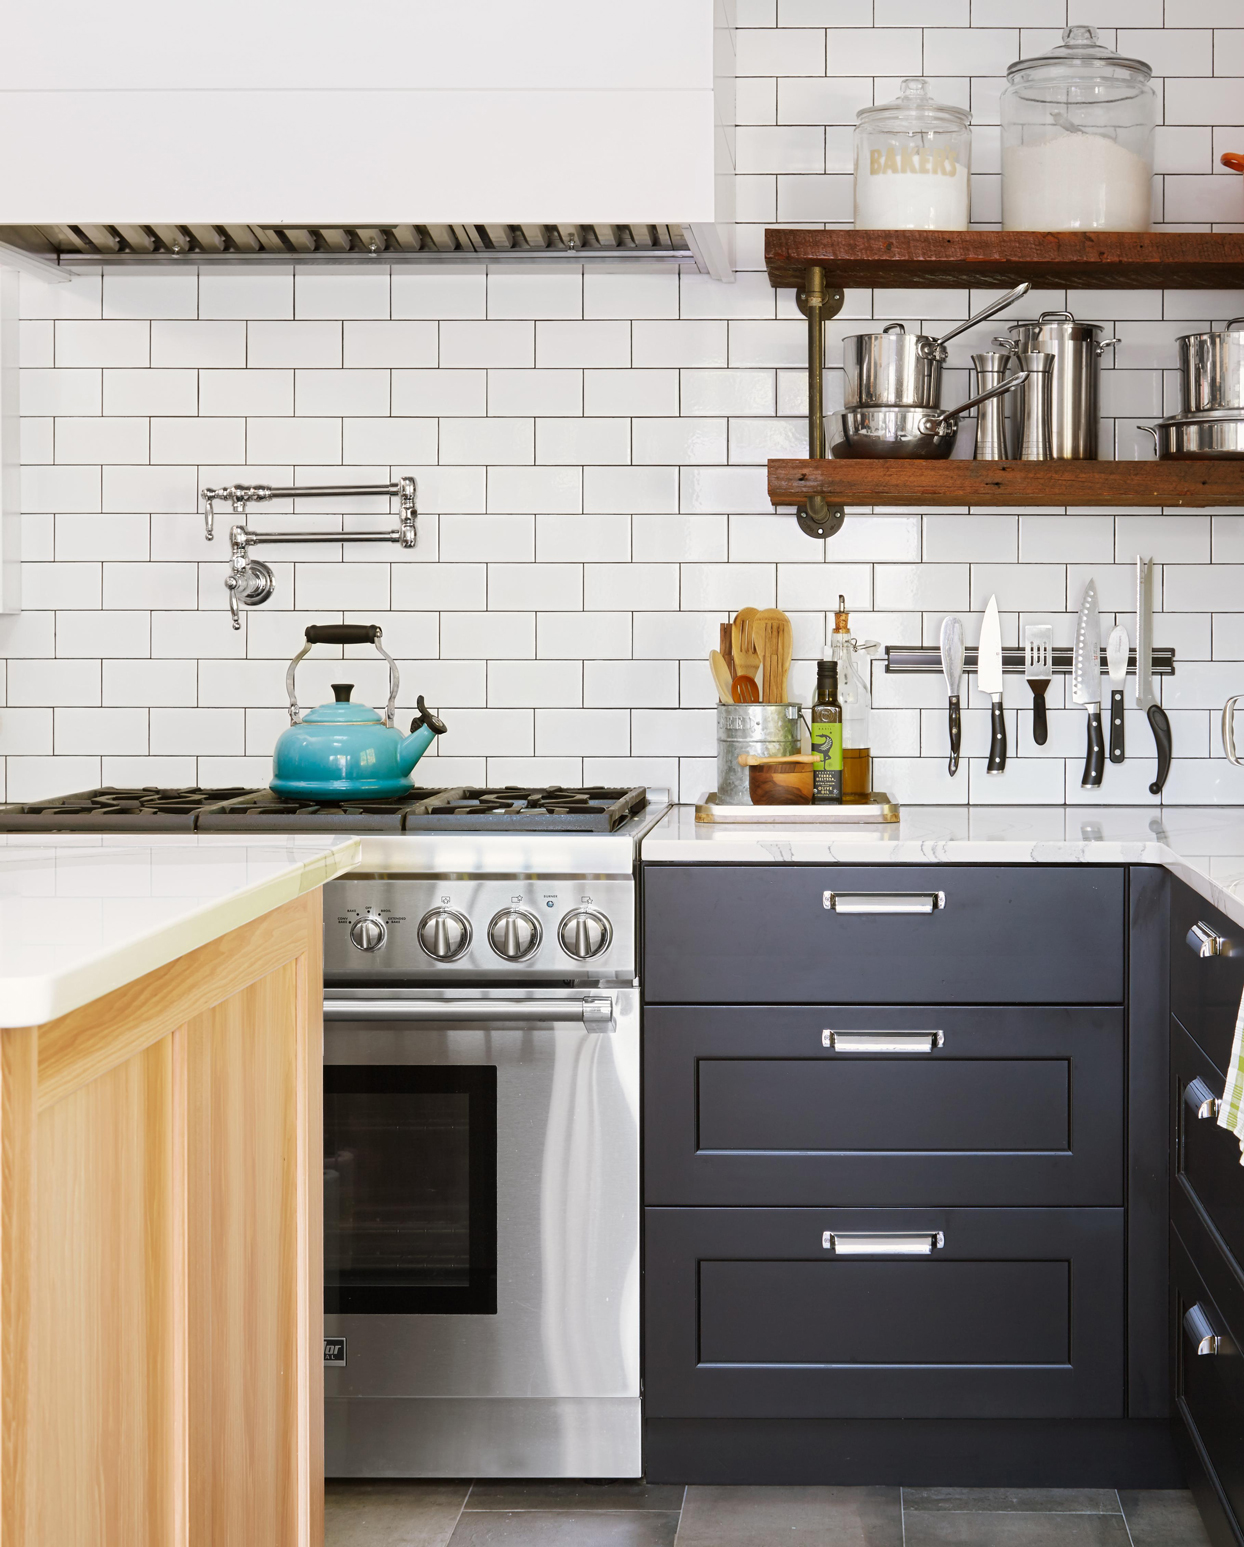 white subway tile backsplash and pot filler